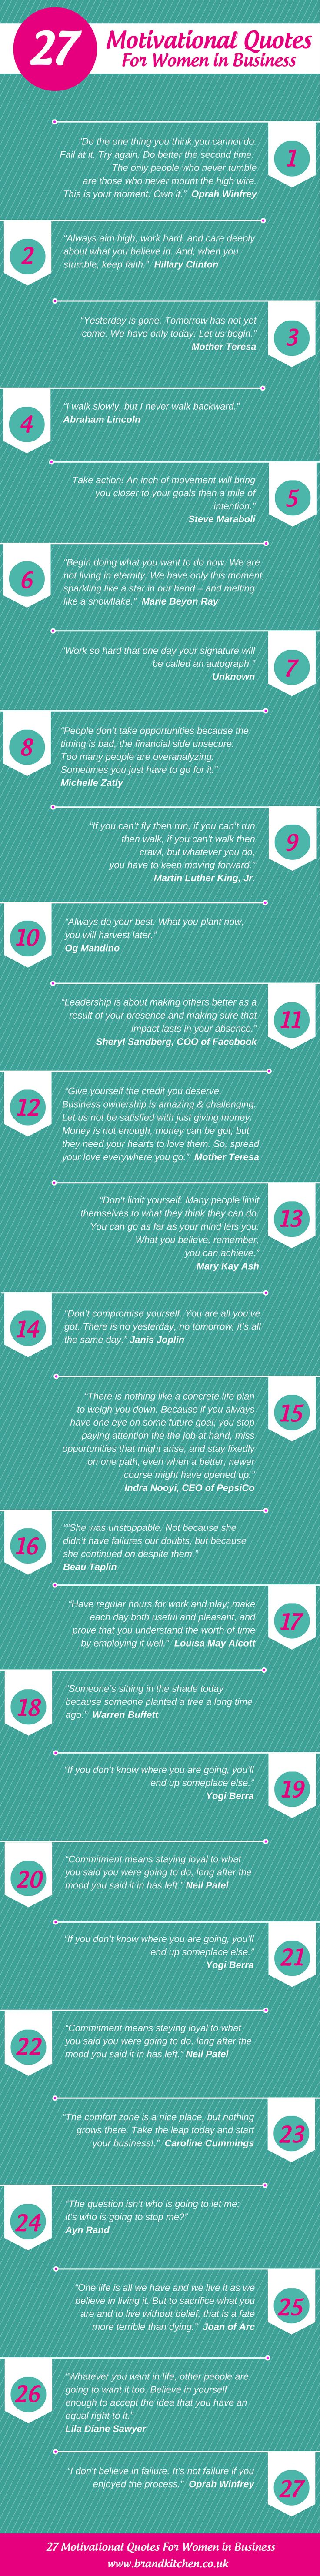 27 Motivational Quotes For Women In Business #infographic #quotes #business #entrepreneur #motivational www.brandkitchen.co.uk